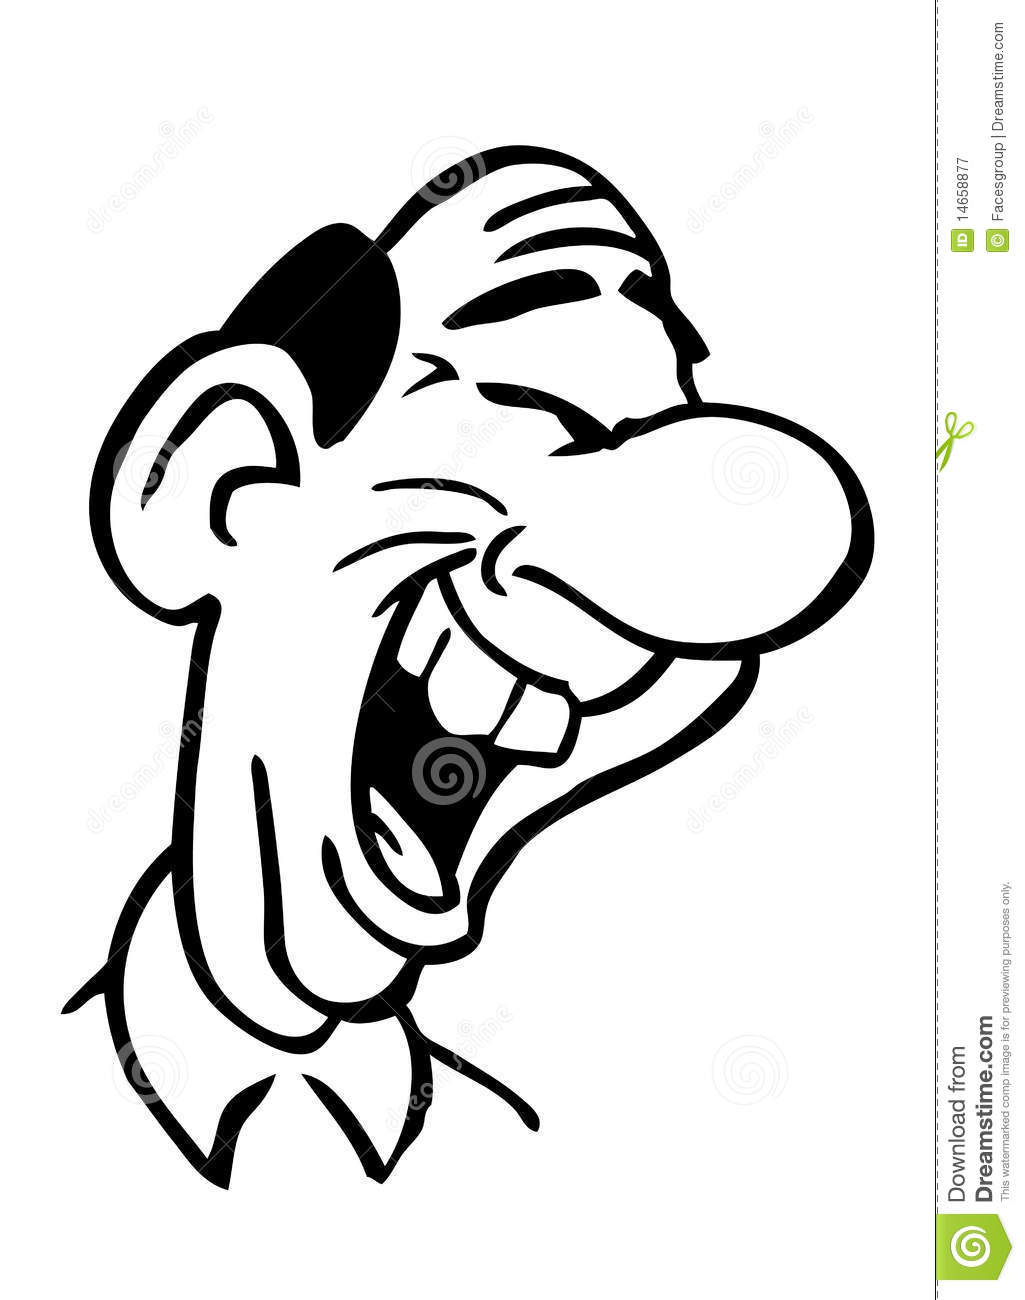 Cartoon Drawing Laughing Man Royalty Free Stock